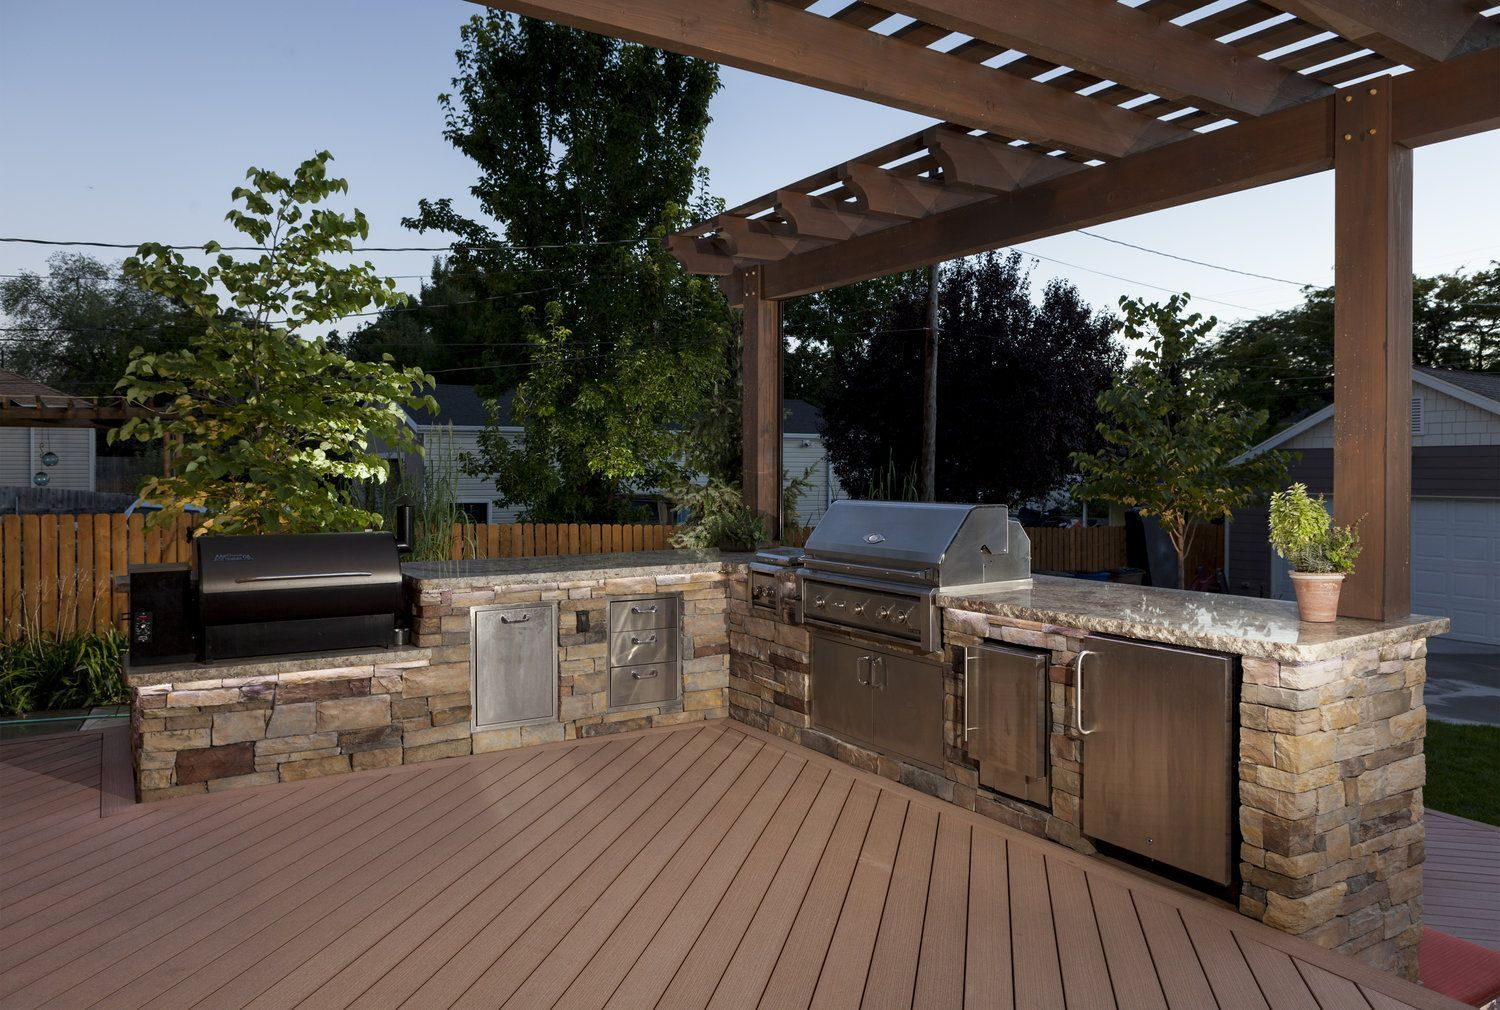 A Comprehensive Overview On Home Decoration In 2020 Outdoor Kitchen Outdoor Kitchen Bars Backyard Kitchen